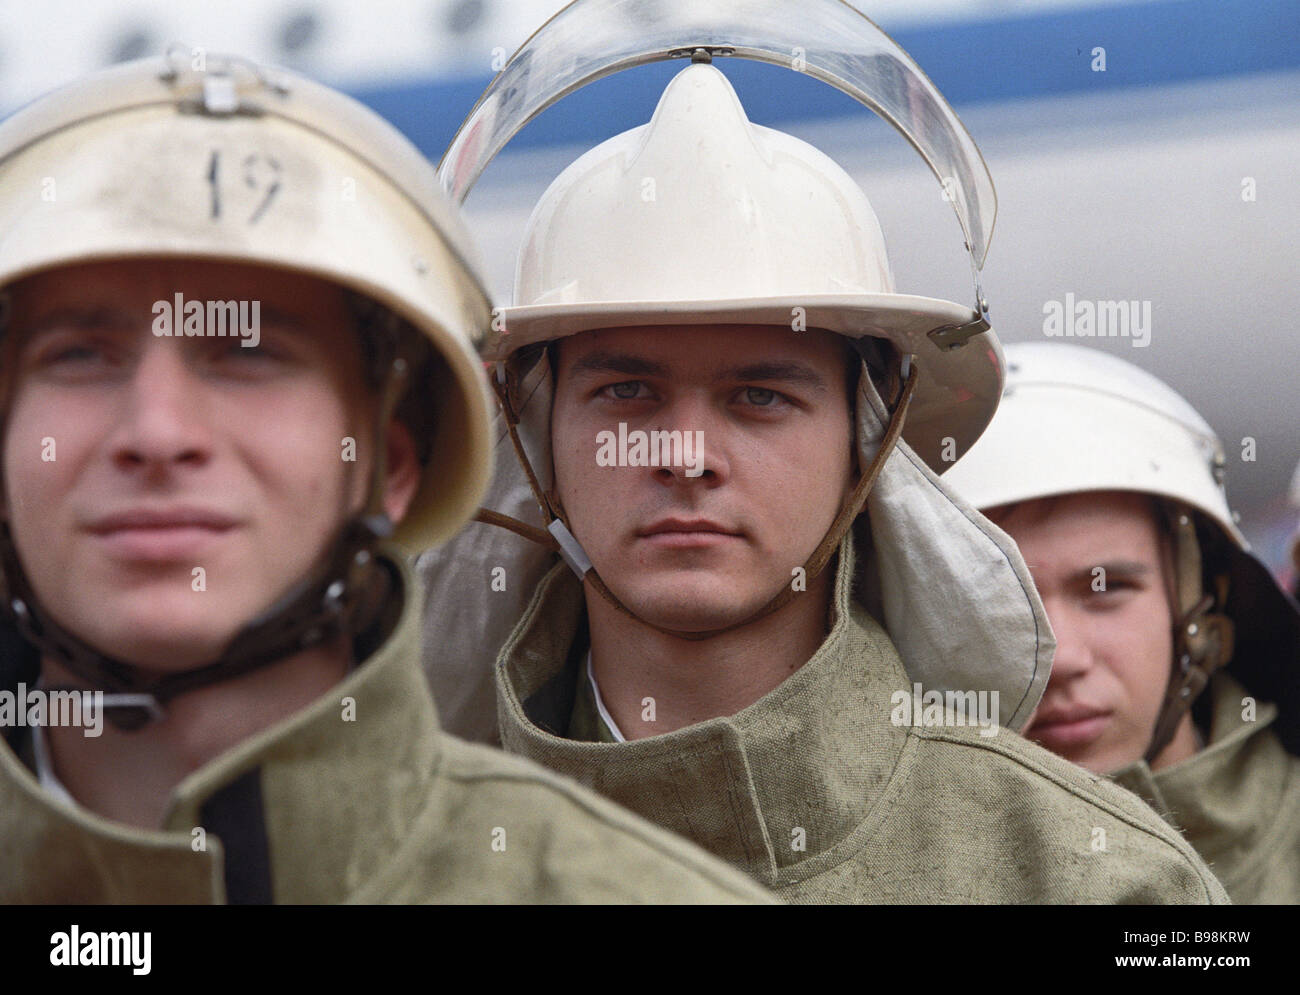 At the exhibition 21st Century Fire Safety - Stock Image